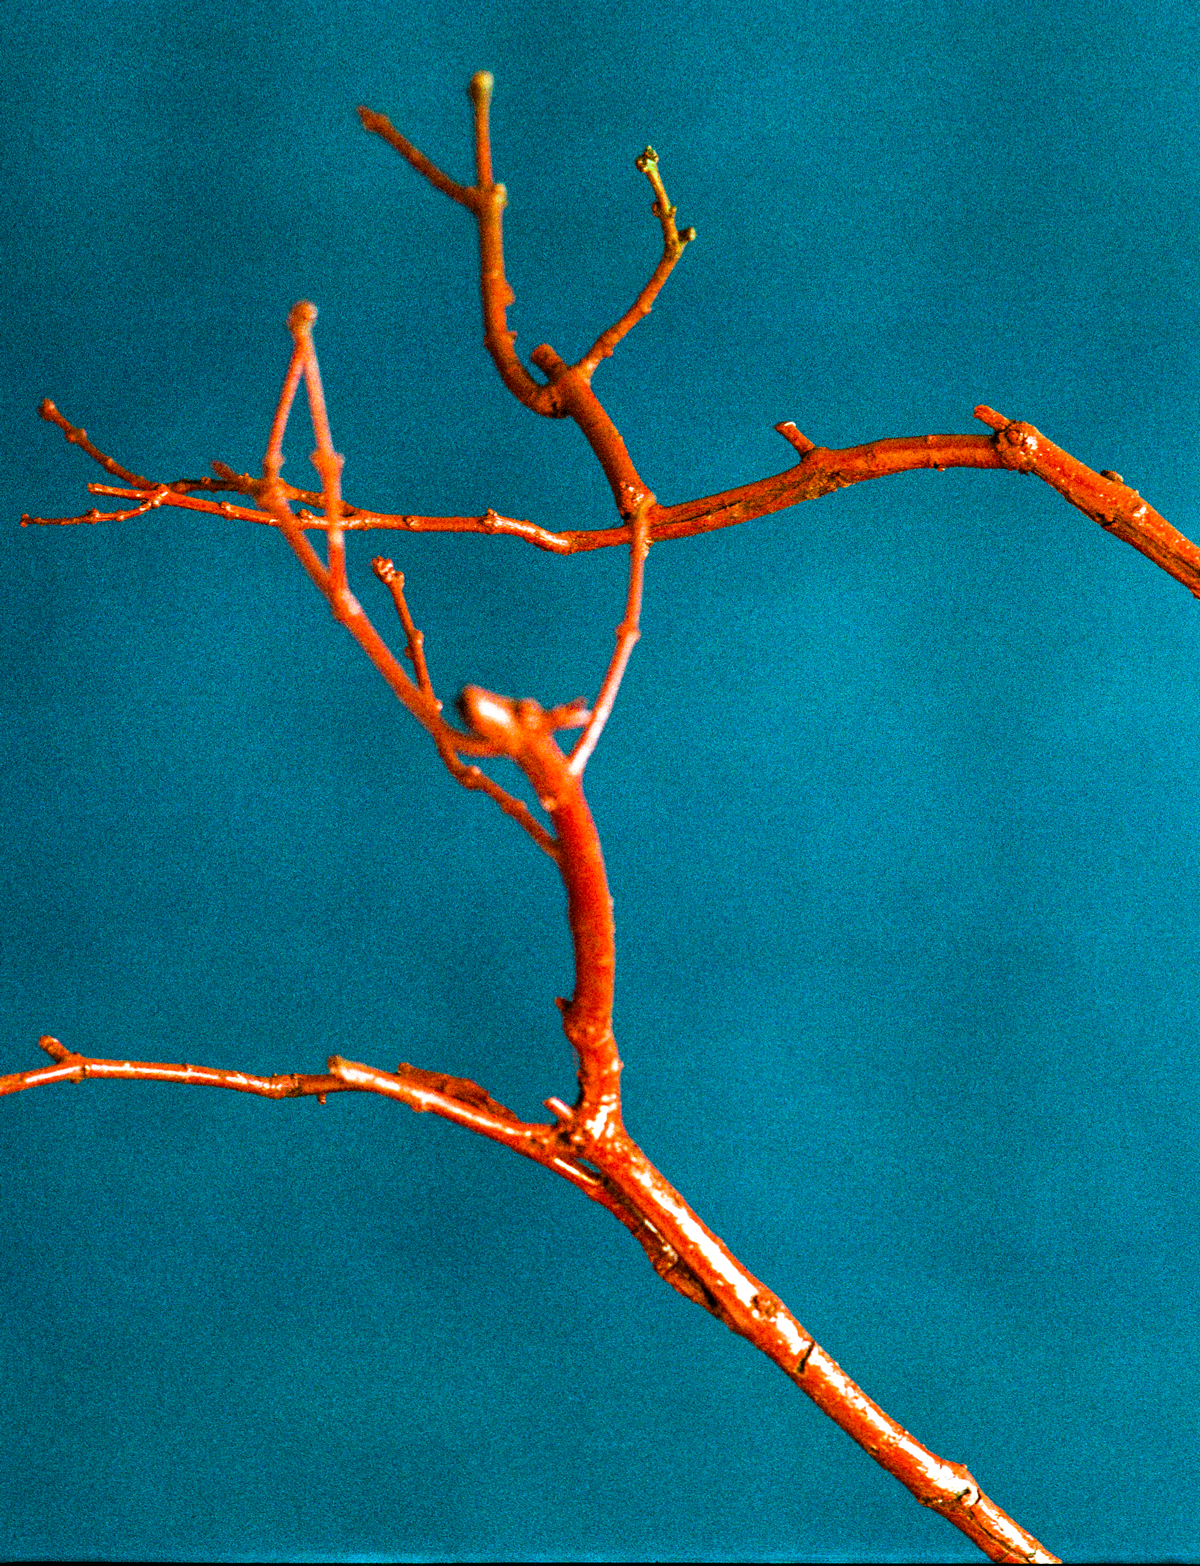 julien_capelle_photography_nature_morte_arbre_rouge_fond_bleu.jpg